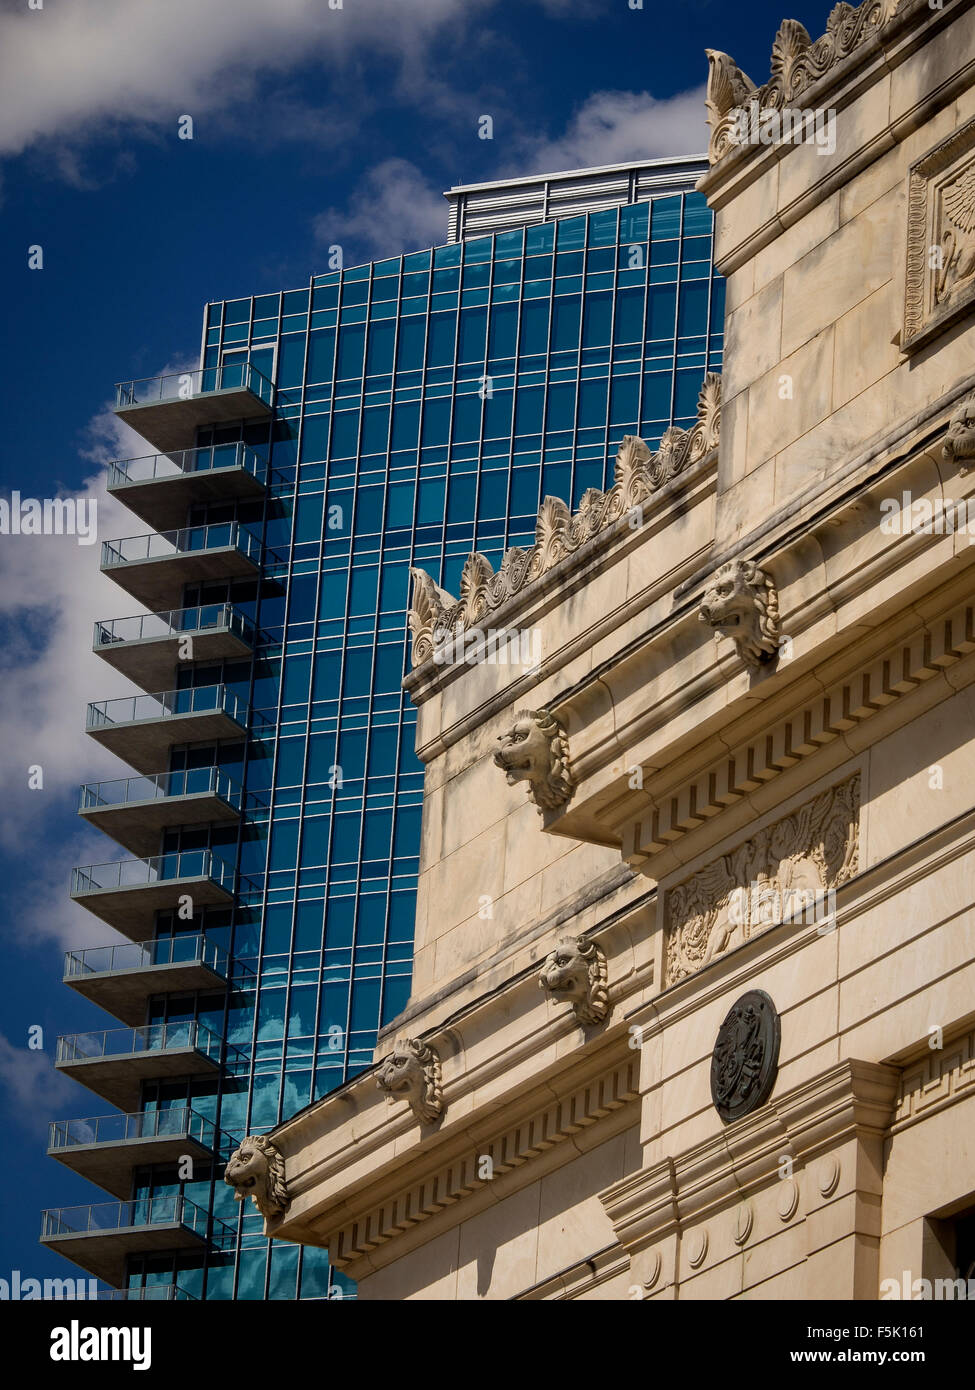 Ft worth tx usa old main post office built in the 30 s contrasts with 21st century omni hotel in downtown fort worth